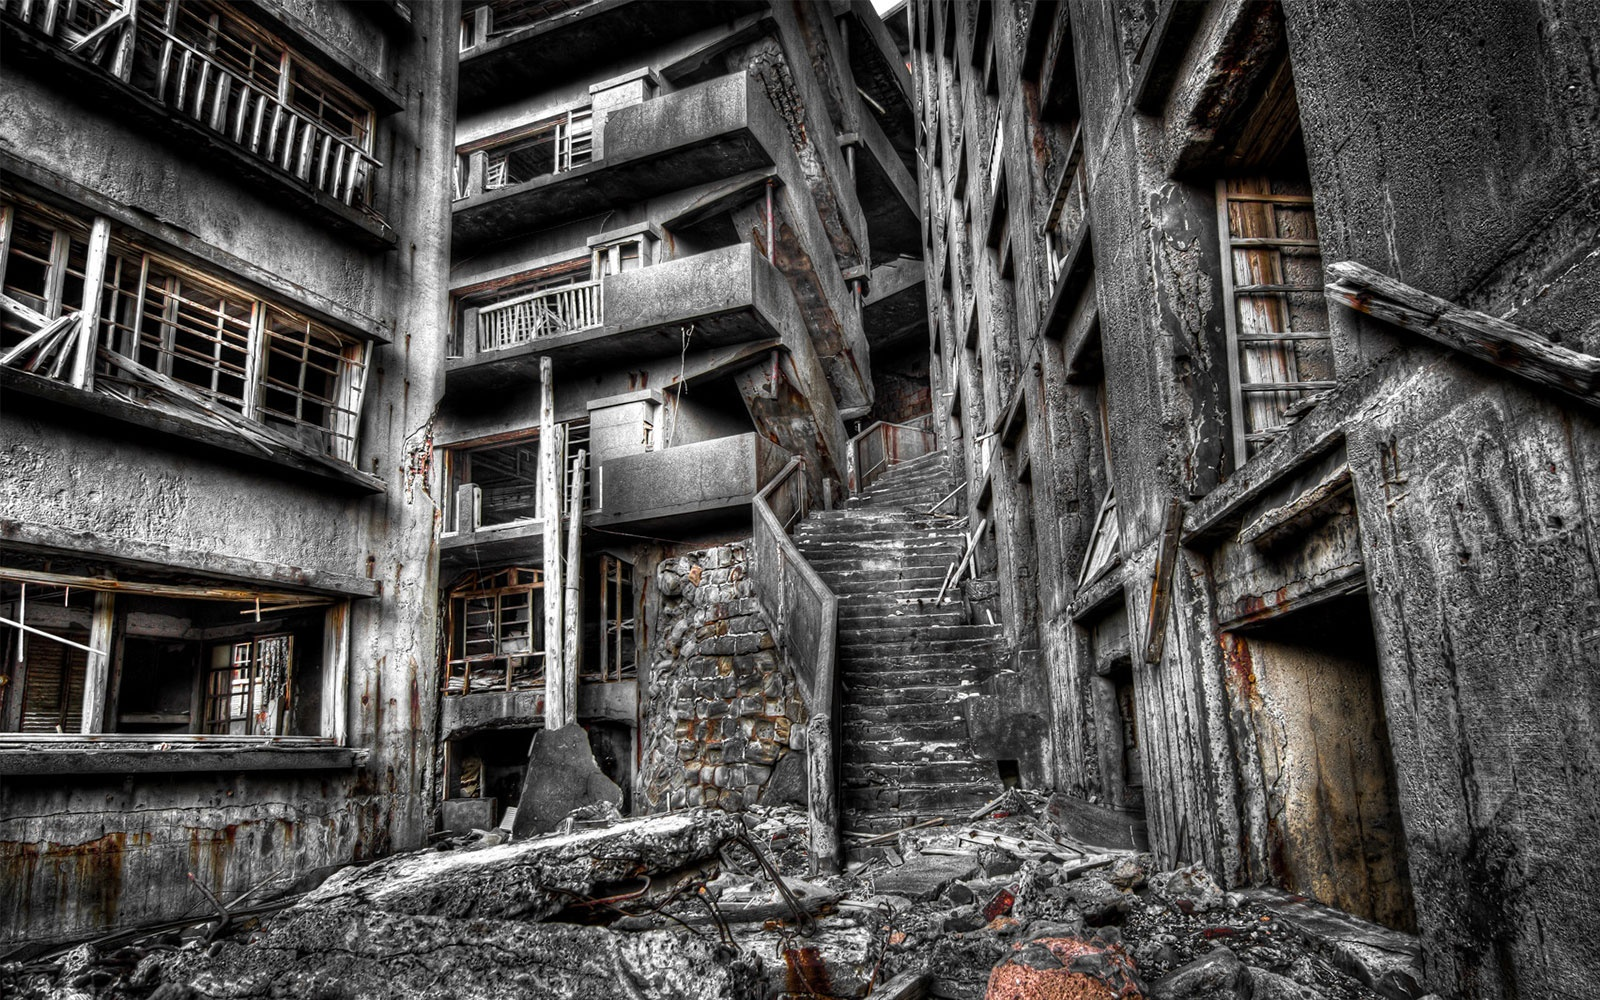 Stairway to Hell, Hashima Island, Japan